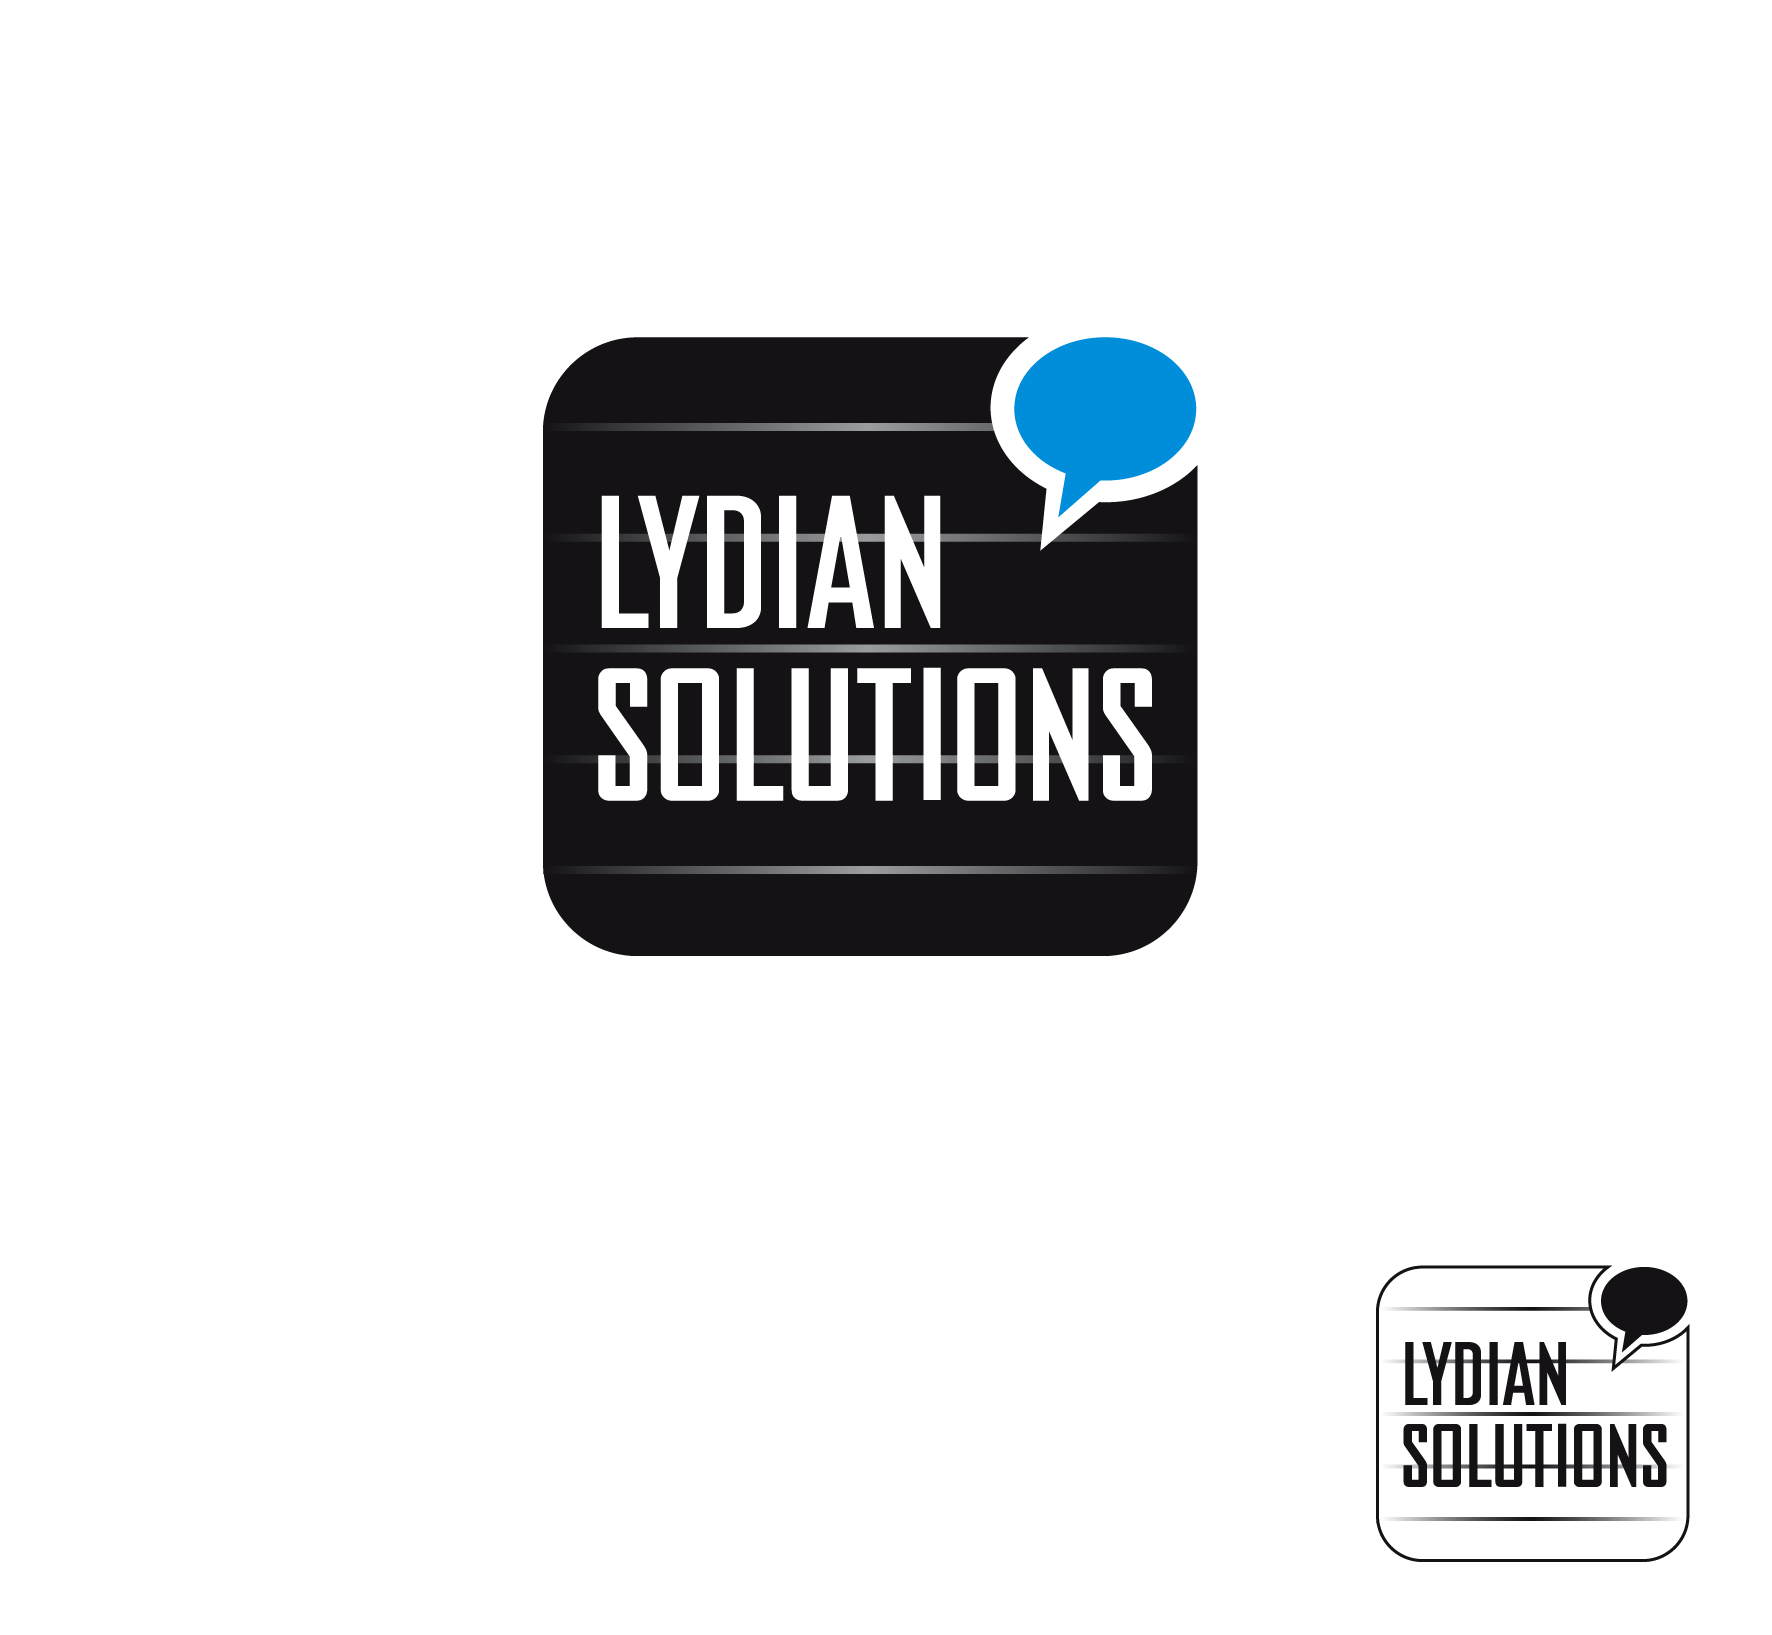 Logo Design by luna - Entry No. 89 in the Logo Design Contest Fun Logo Design for Lydian Solutions.